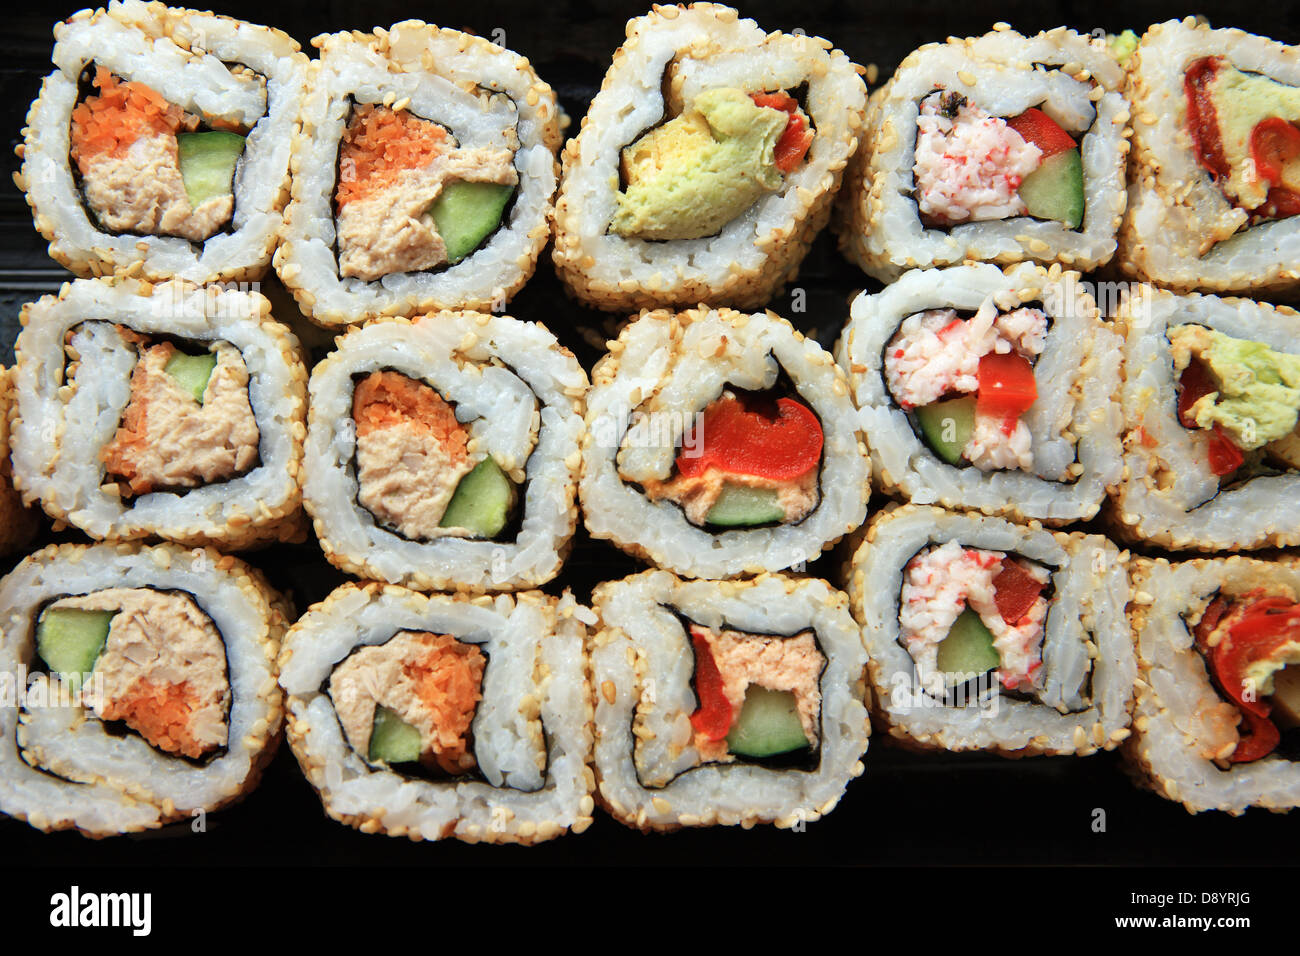 Sushi - various fillings - Stock Image